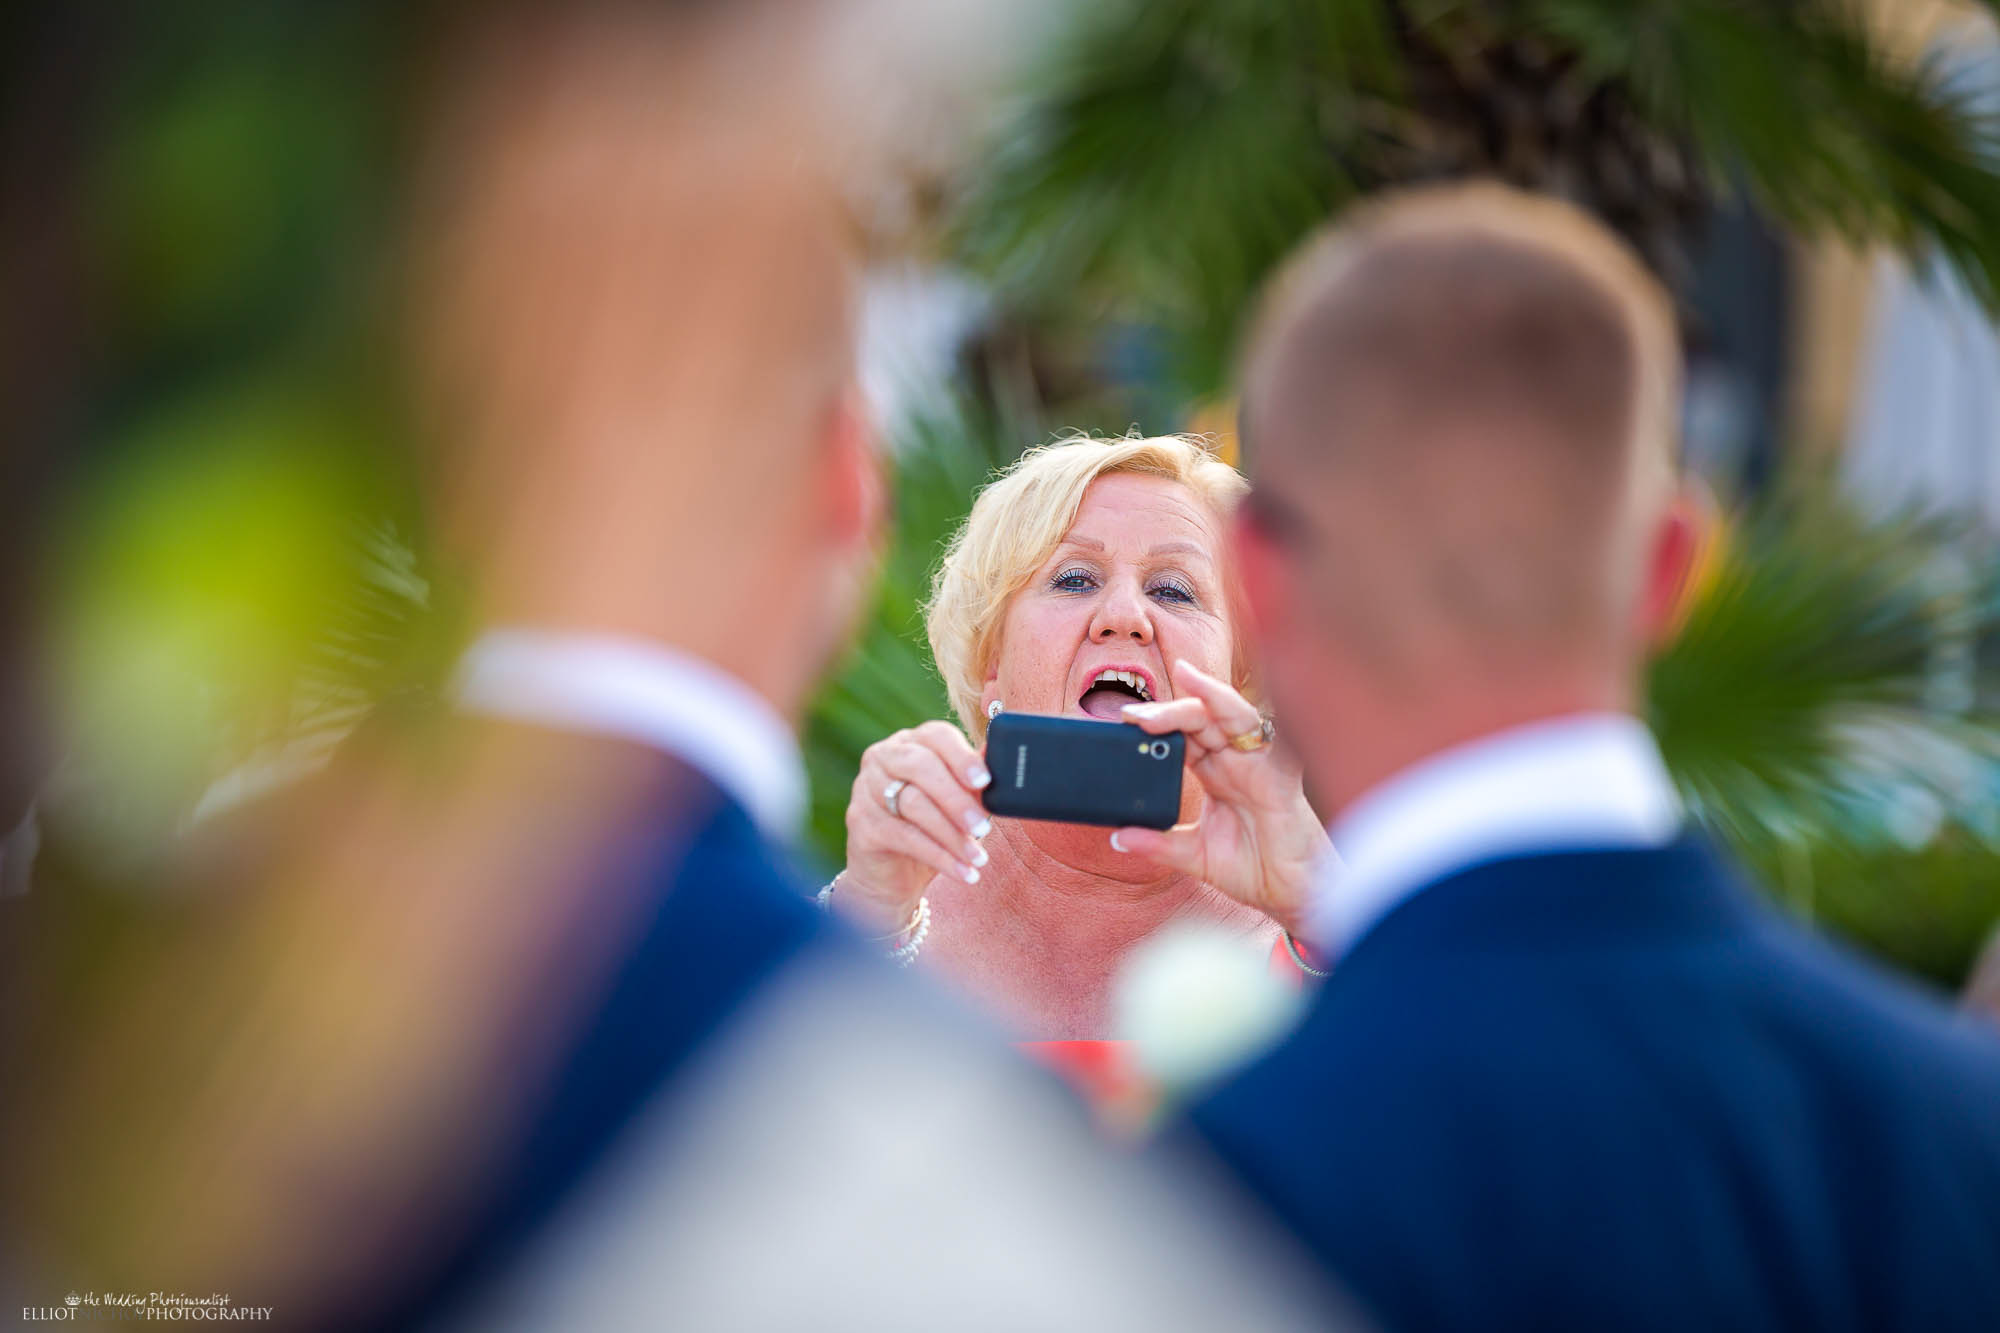 Wedding guests takes a photo of the groom and his Bestman before the wedding ceremony starts.